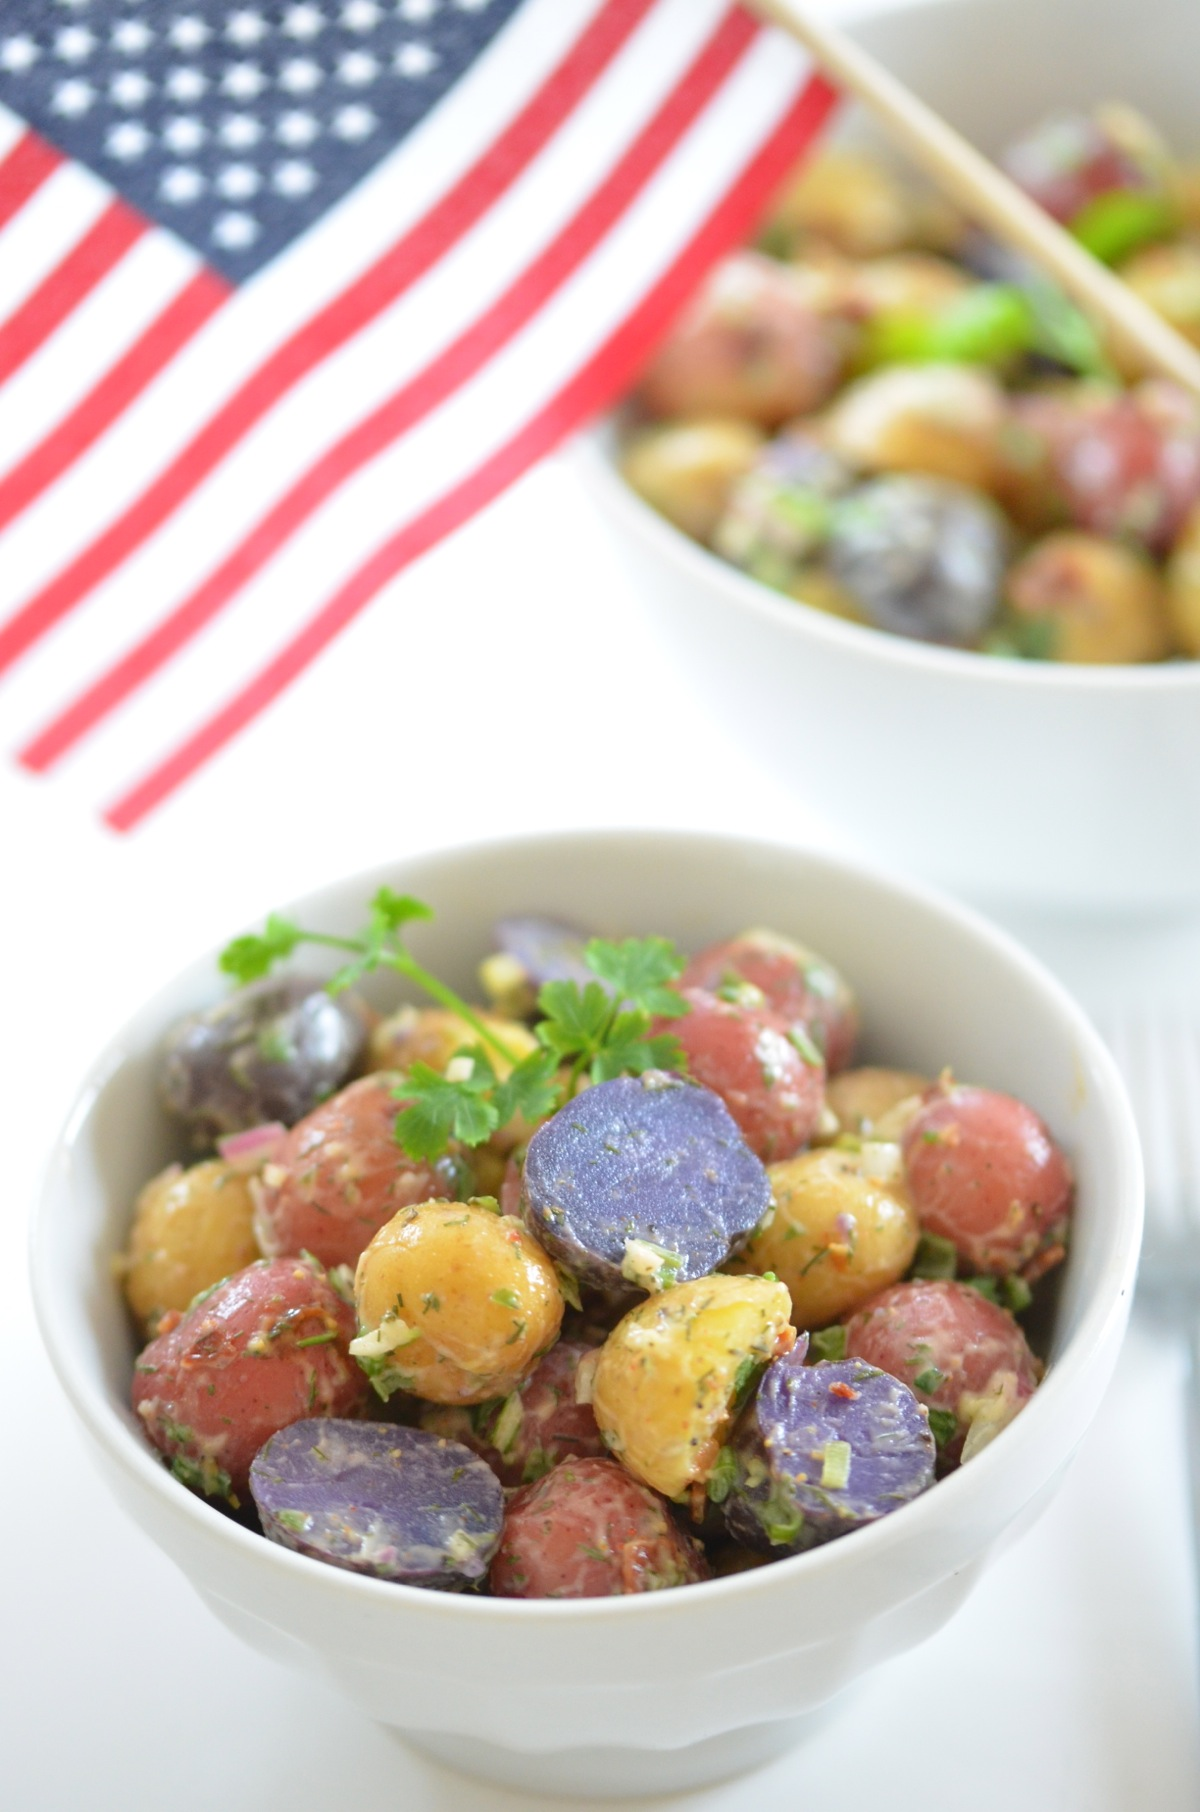 Patriot Potato Salad